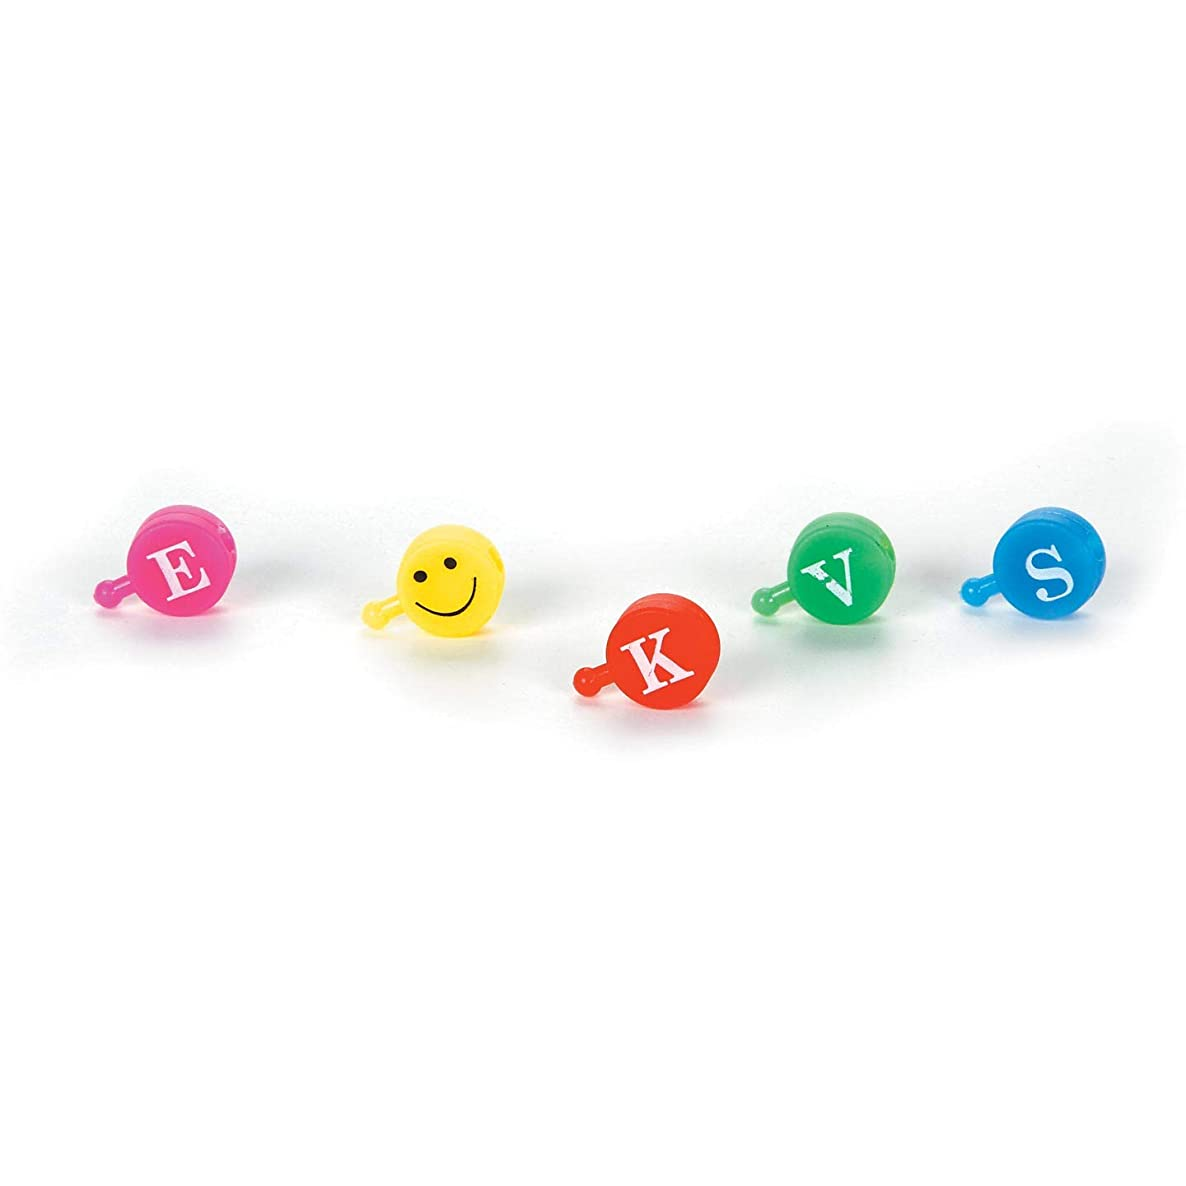 Bulk Buy: Darice DIY Crafts Pop Beads Alphabet and Smiley Face Bright Colors 60 pieces (3-Pack) 0726-92